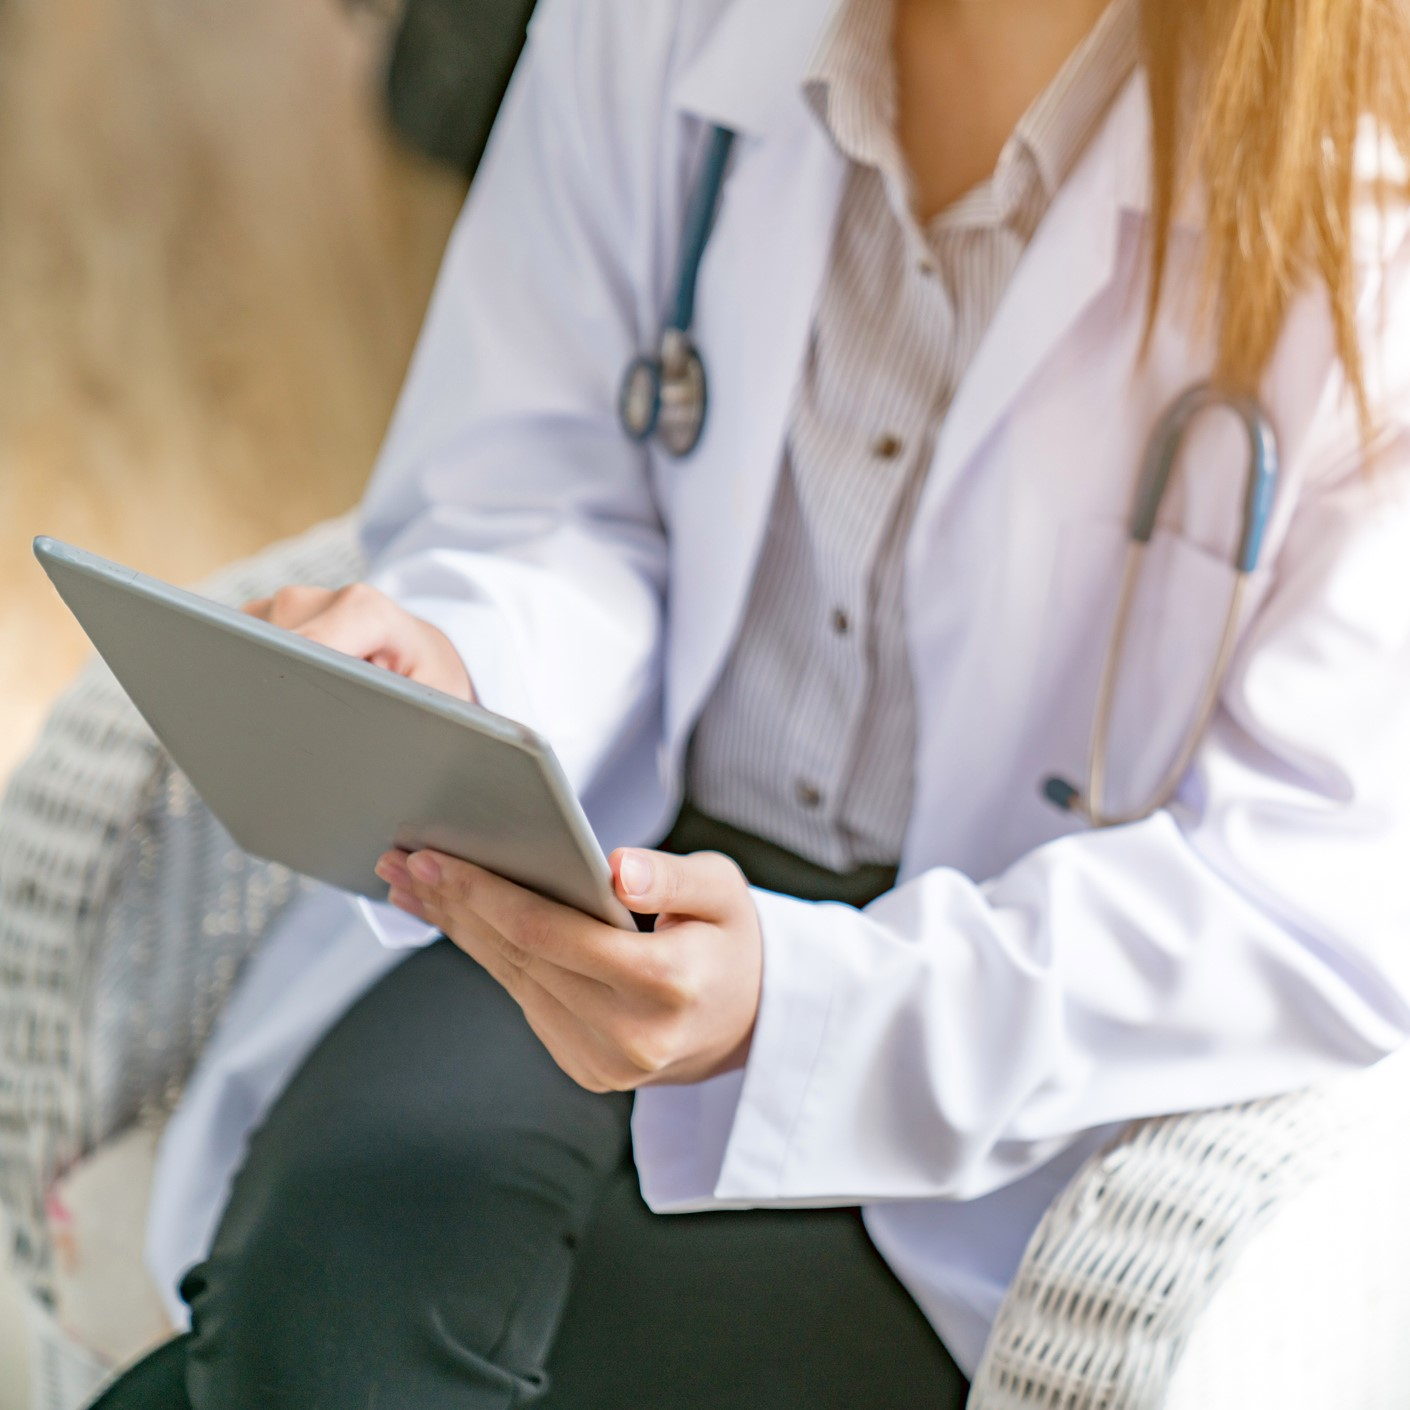 Doctor on tablet